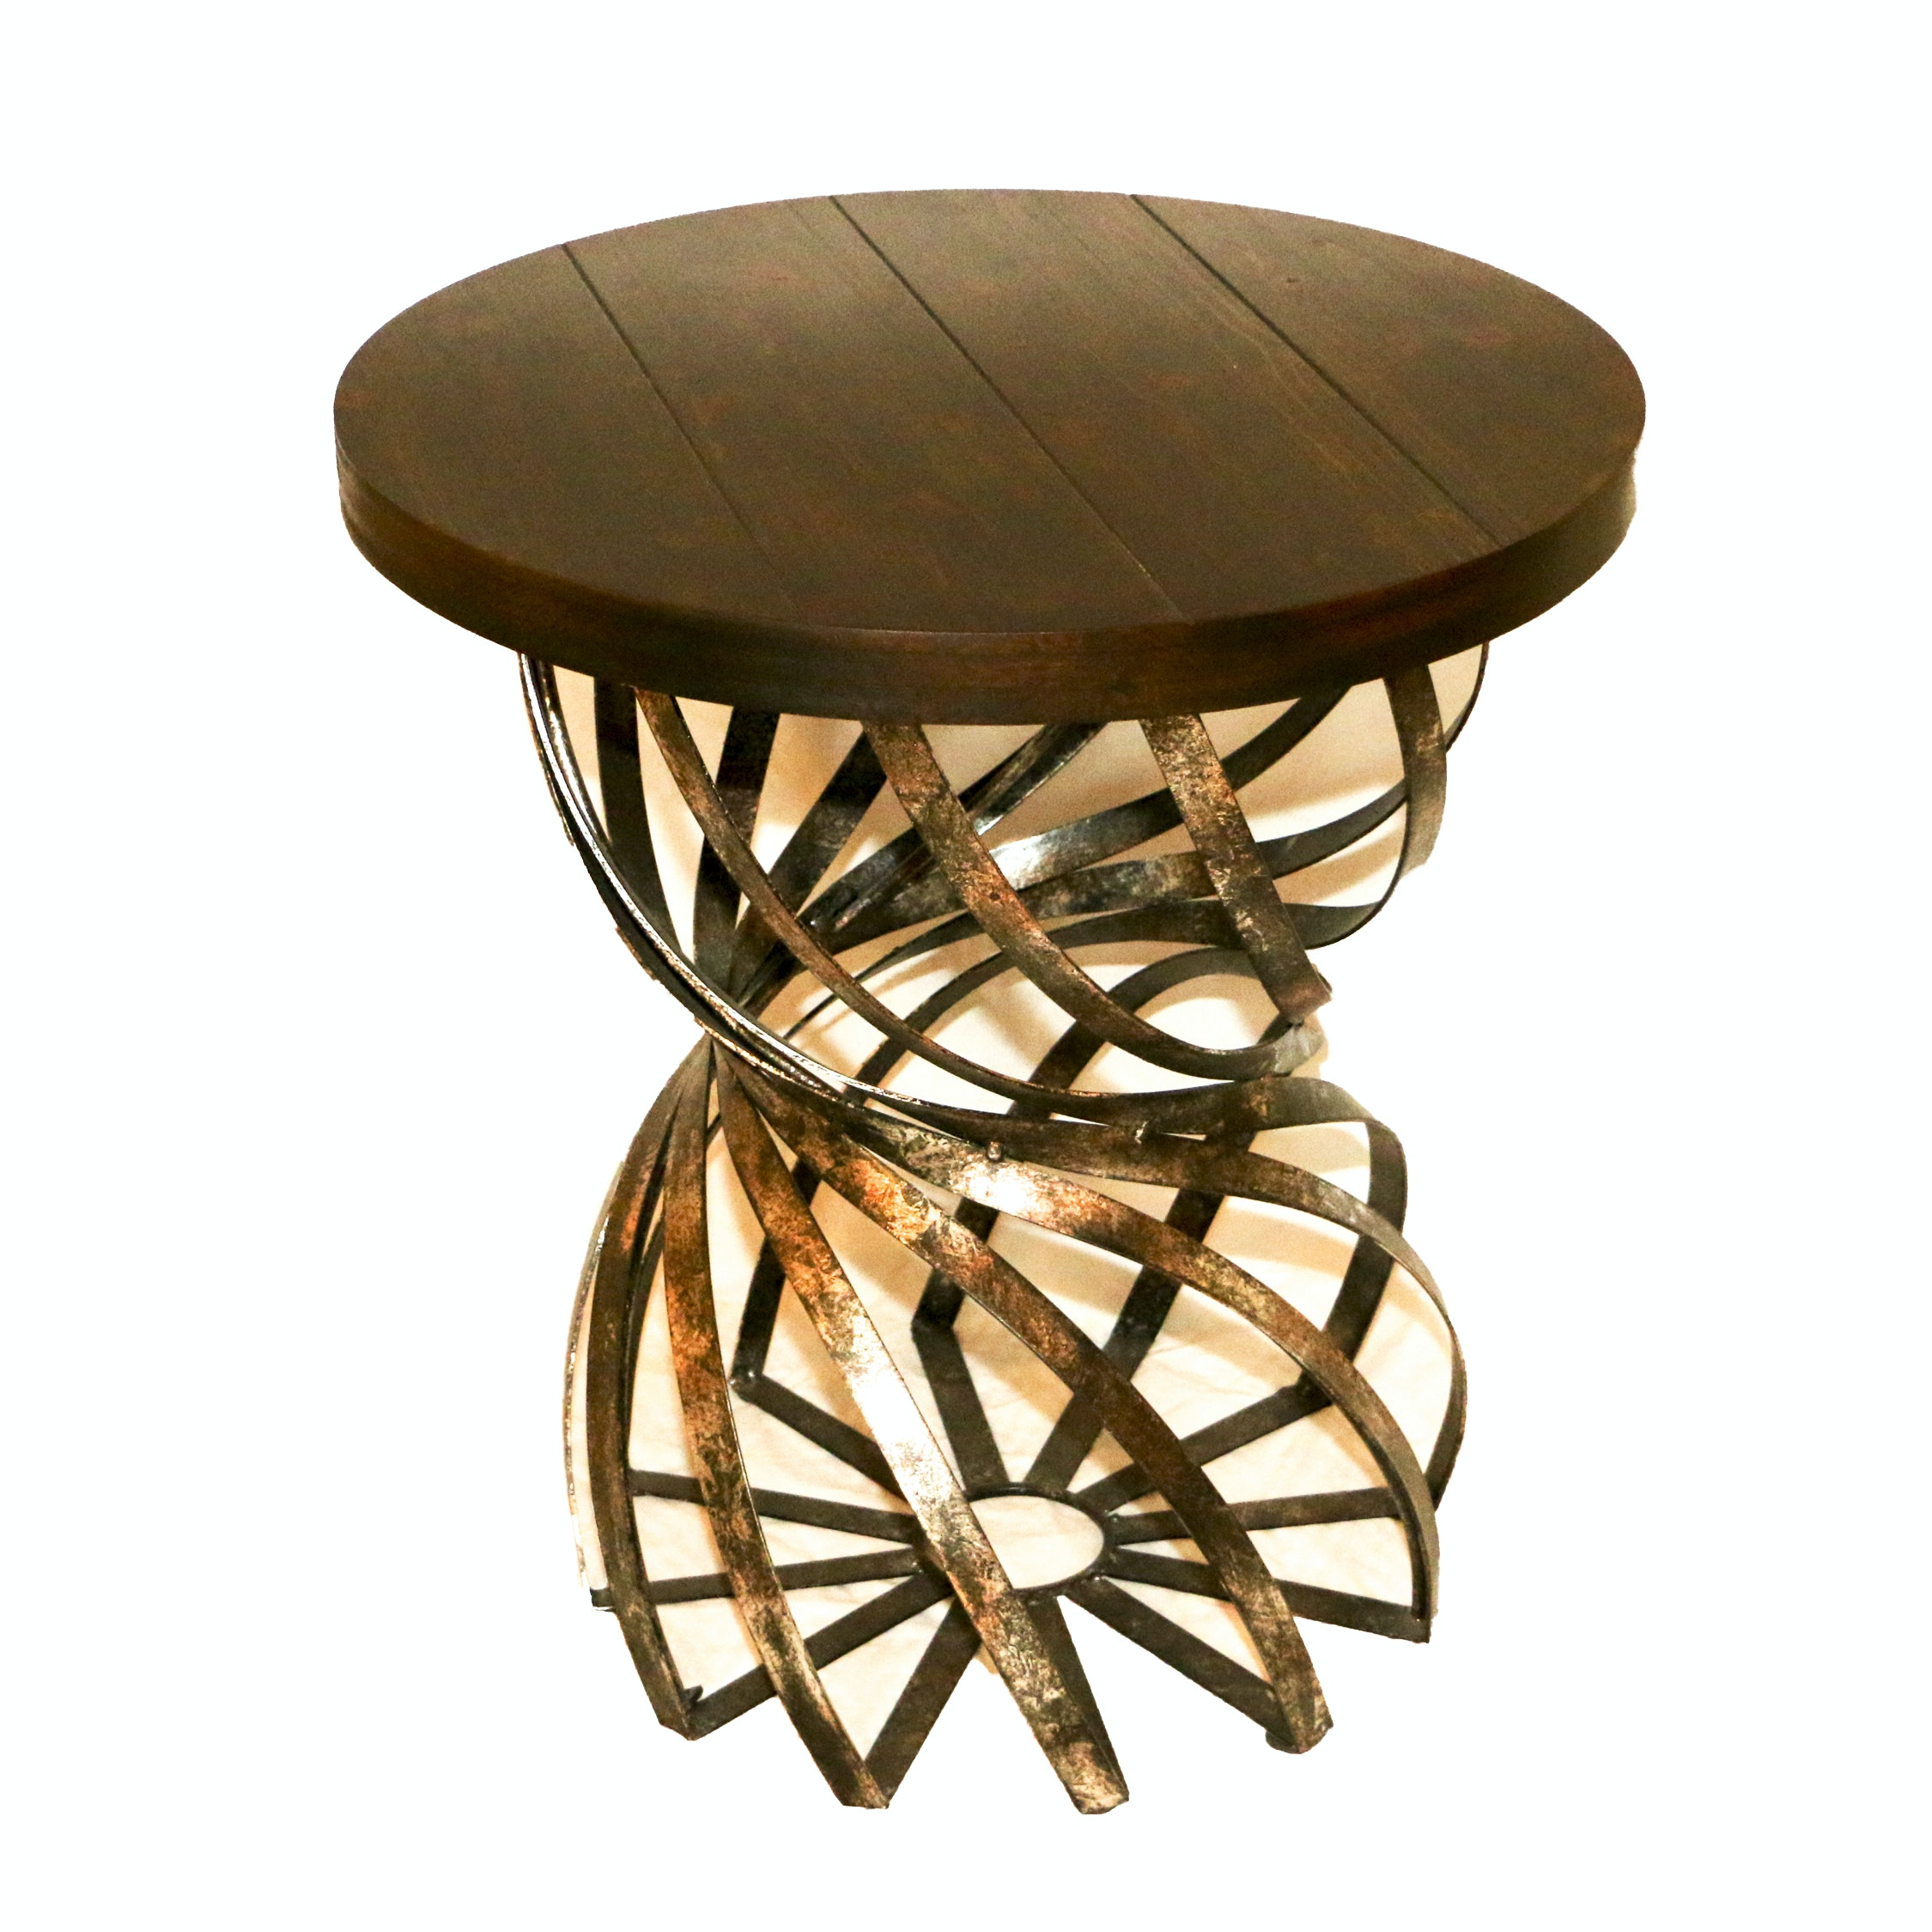 Metal Twisted Sphere Base Side Table, 21st Century